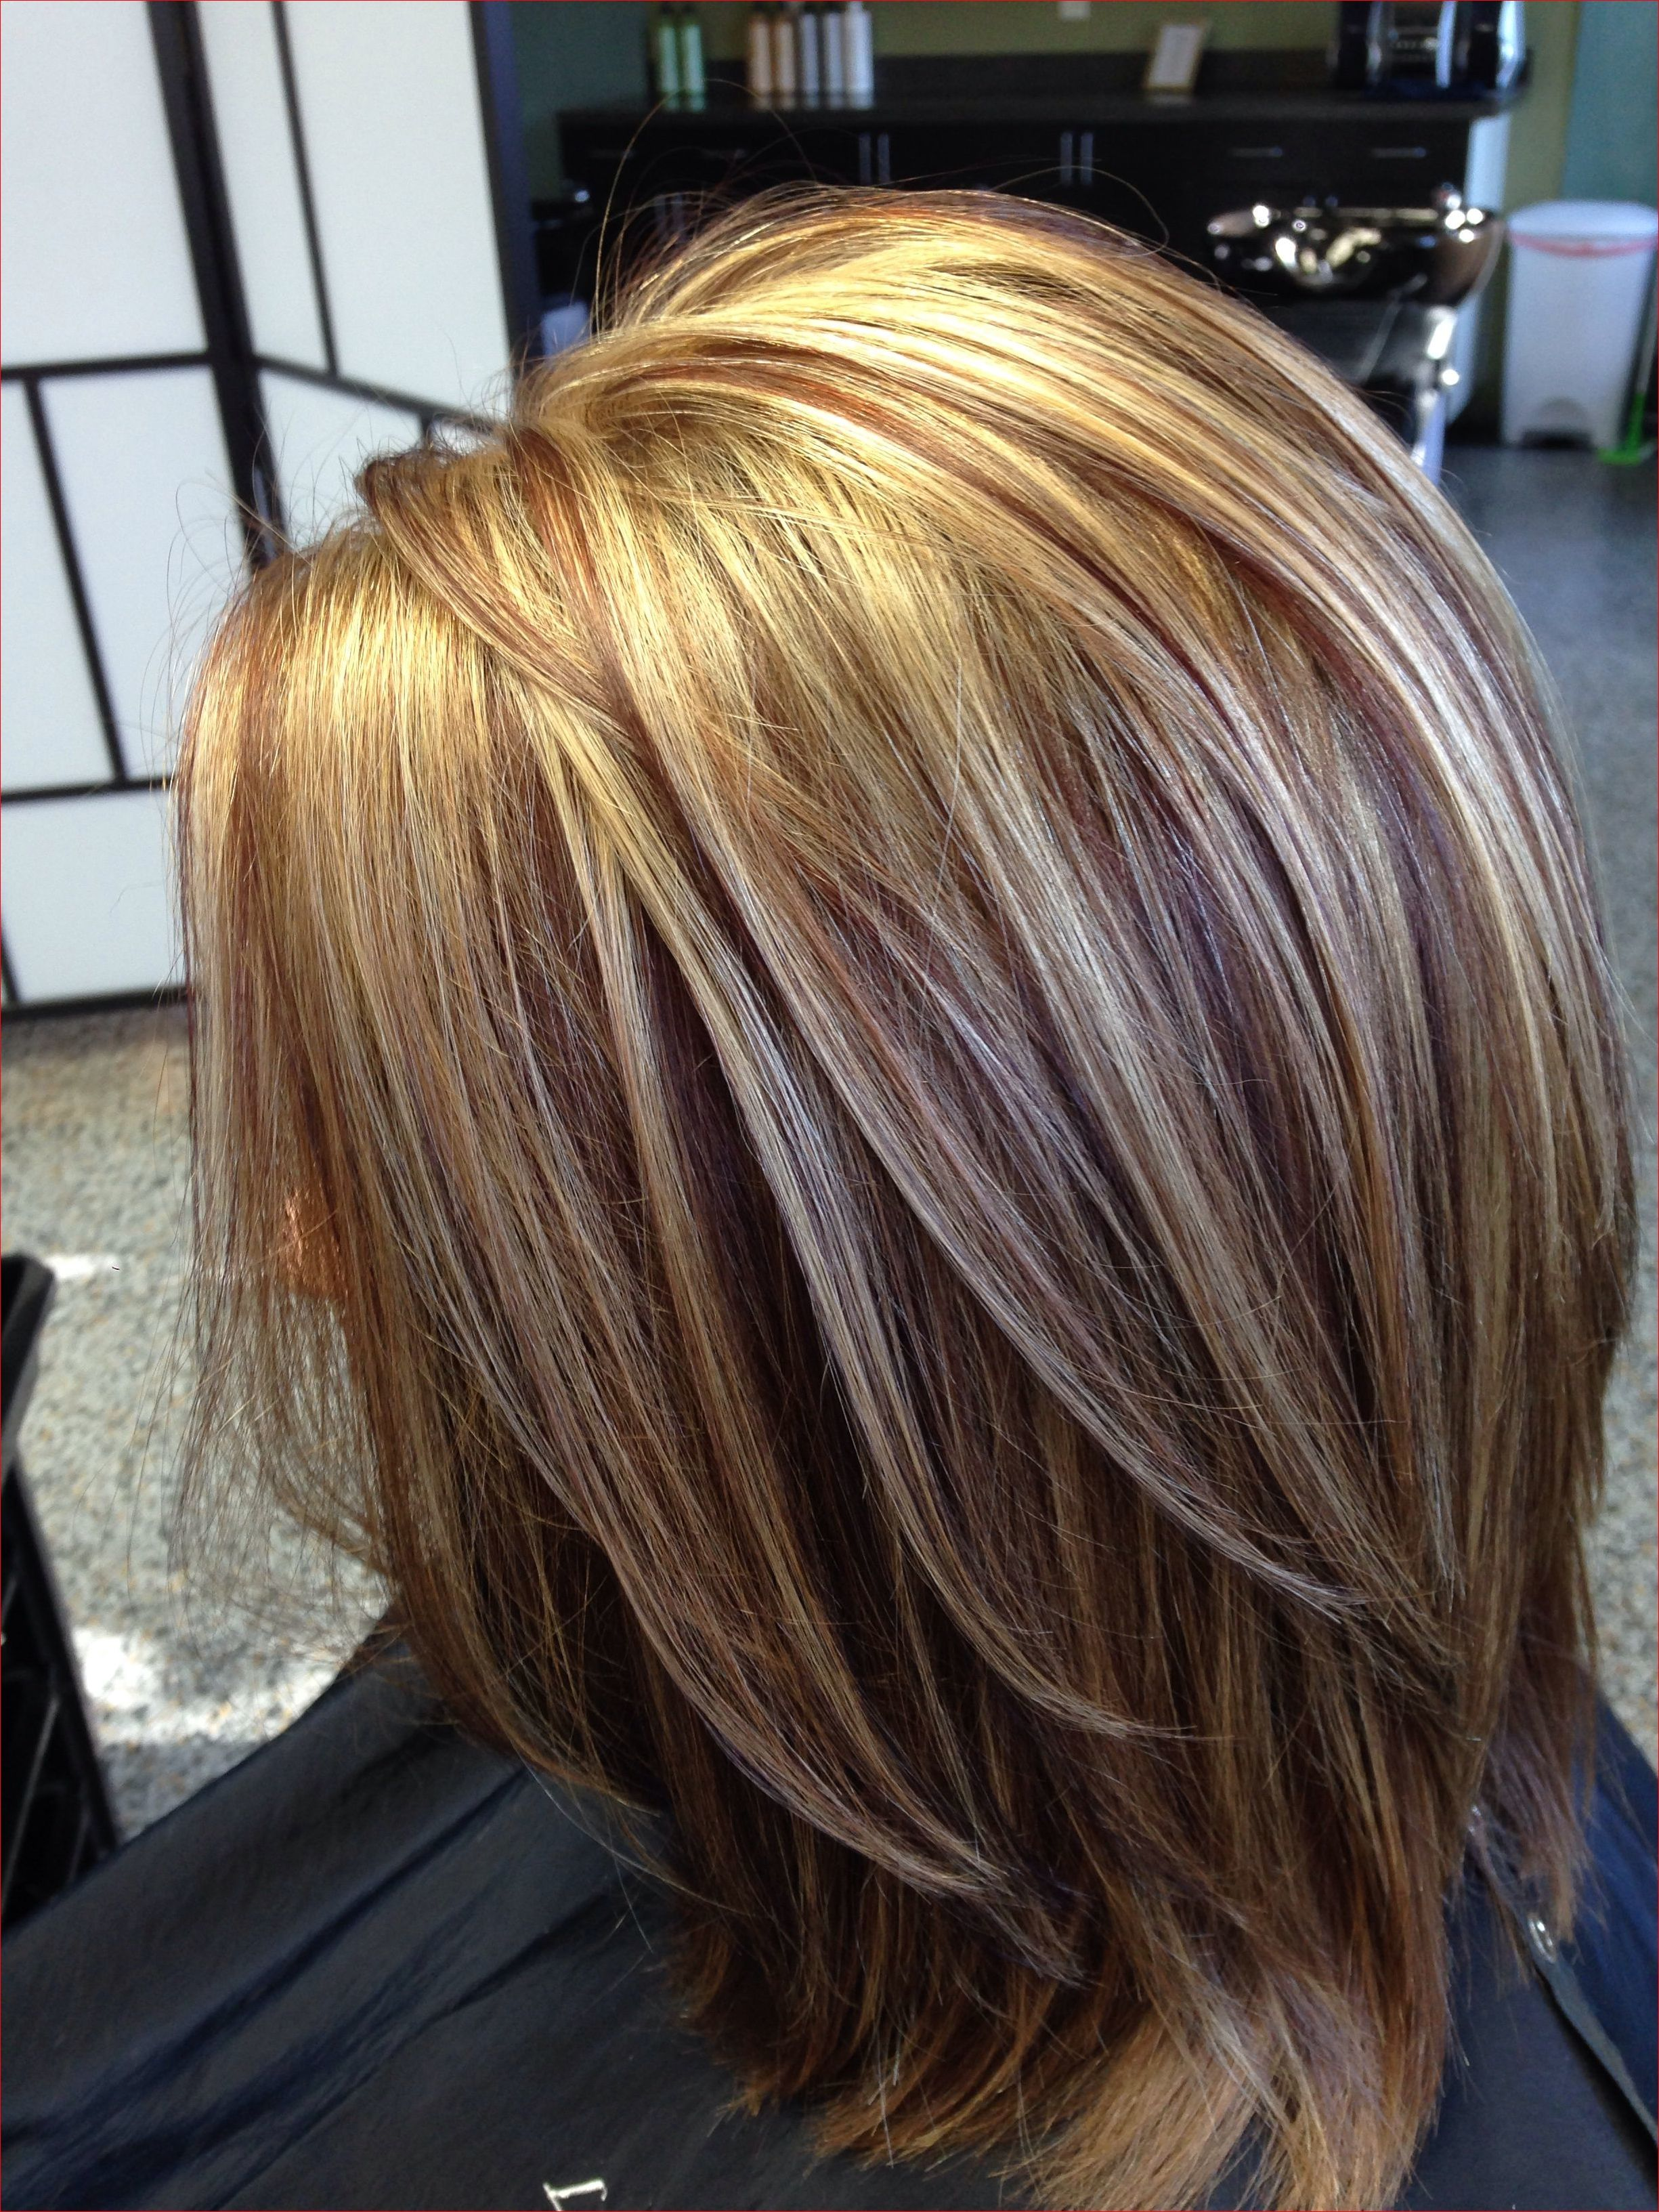 Combination Hair Care For Medium Hairstyles Hair Care